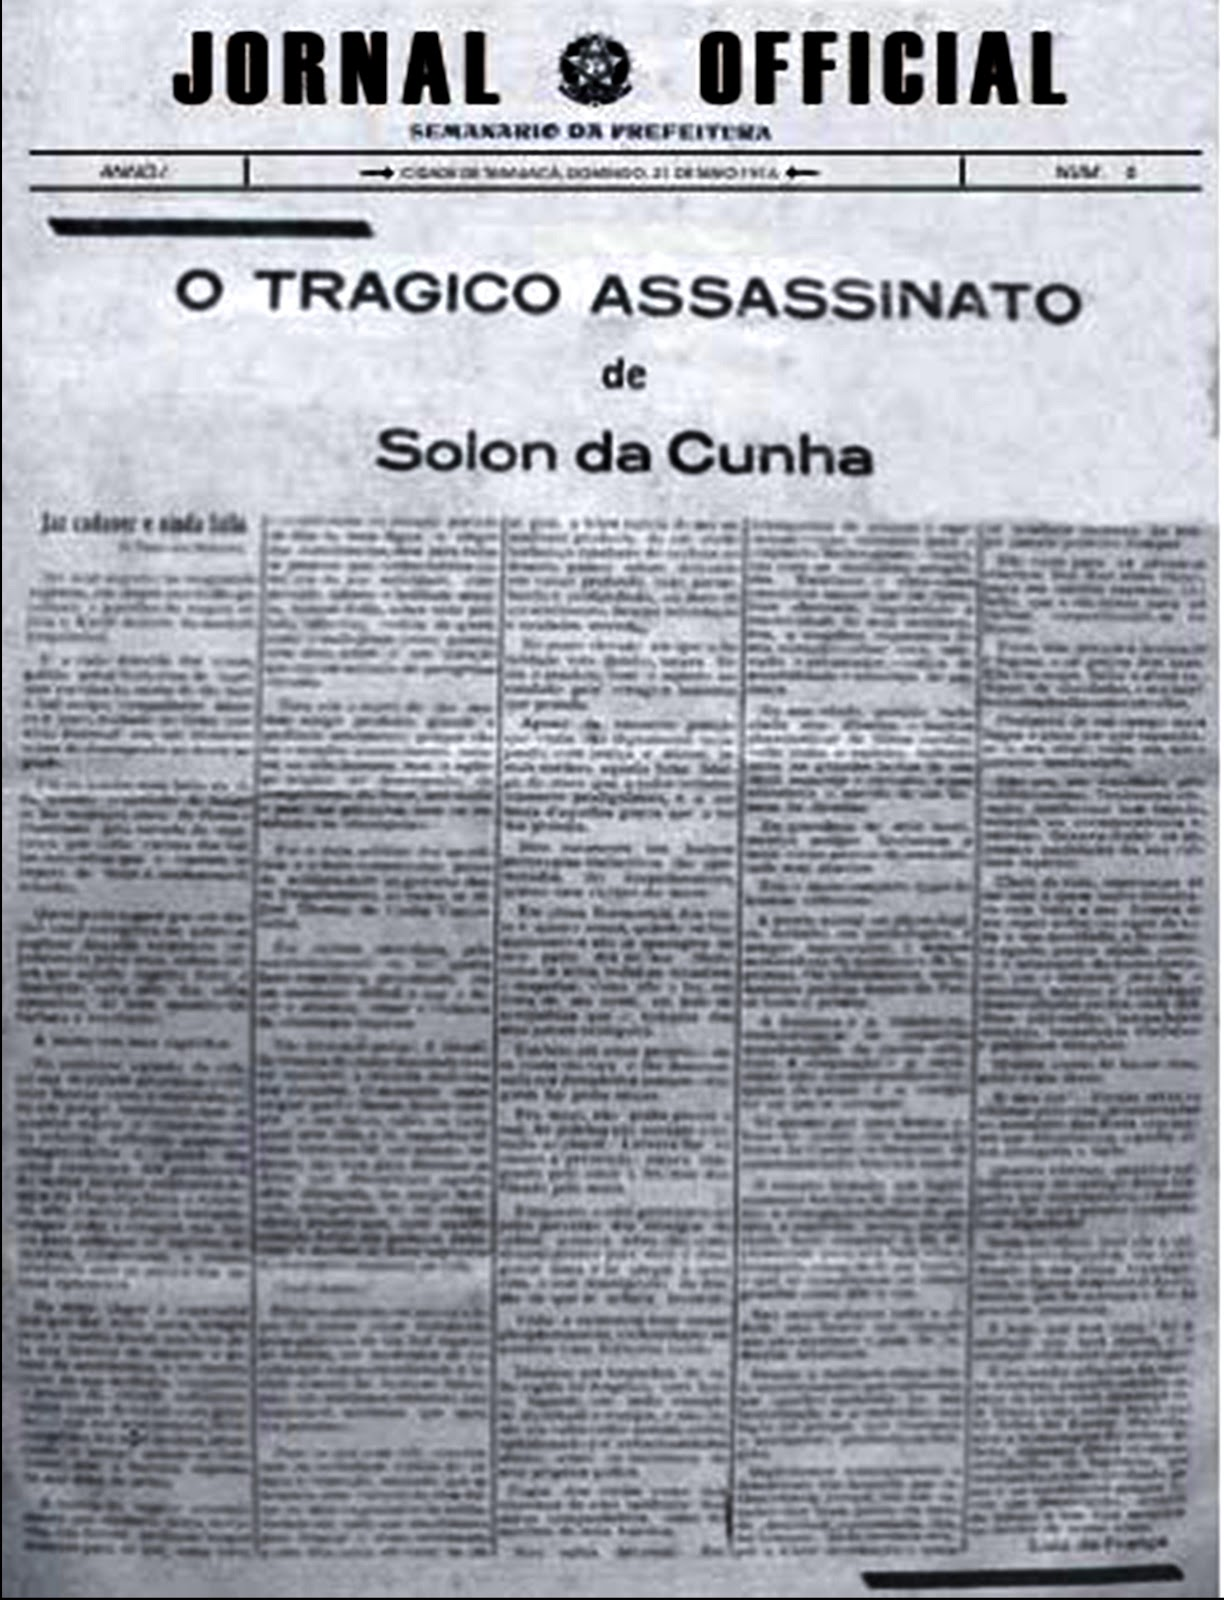 Exemplar do Jornal Official destacando o assassinato de Sólon da Cunha